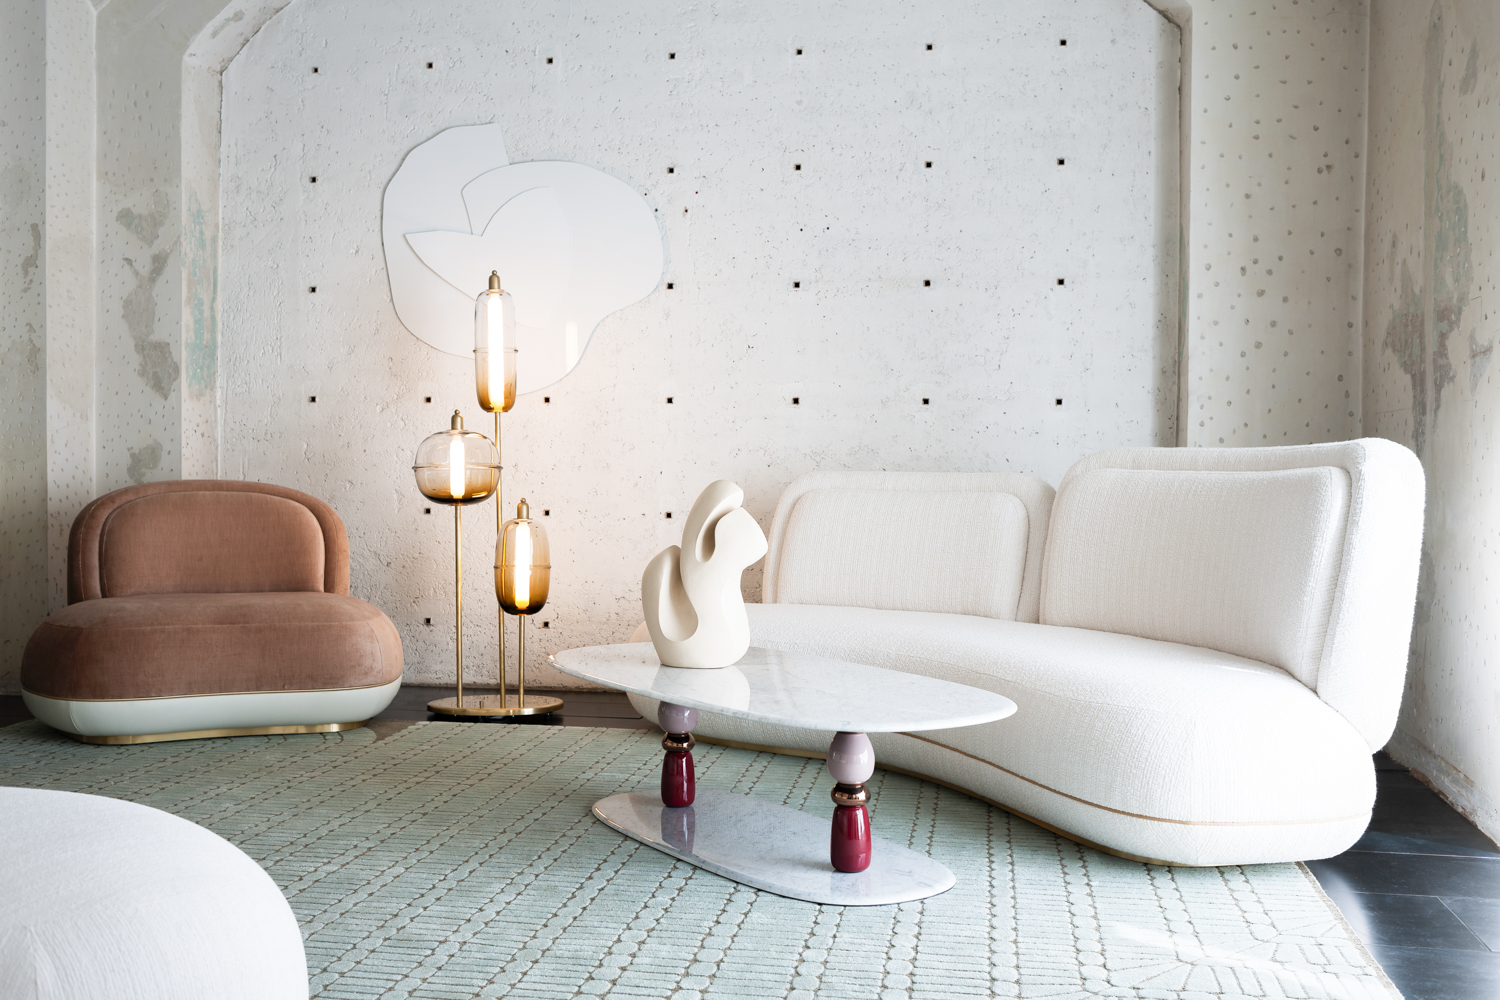 The rug is by La Manufacture Cogolin